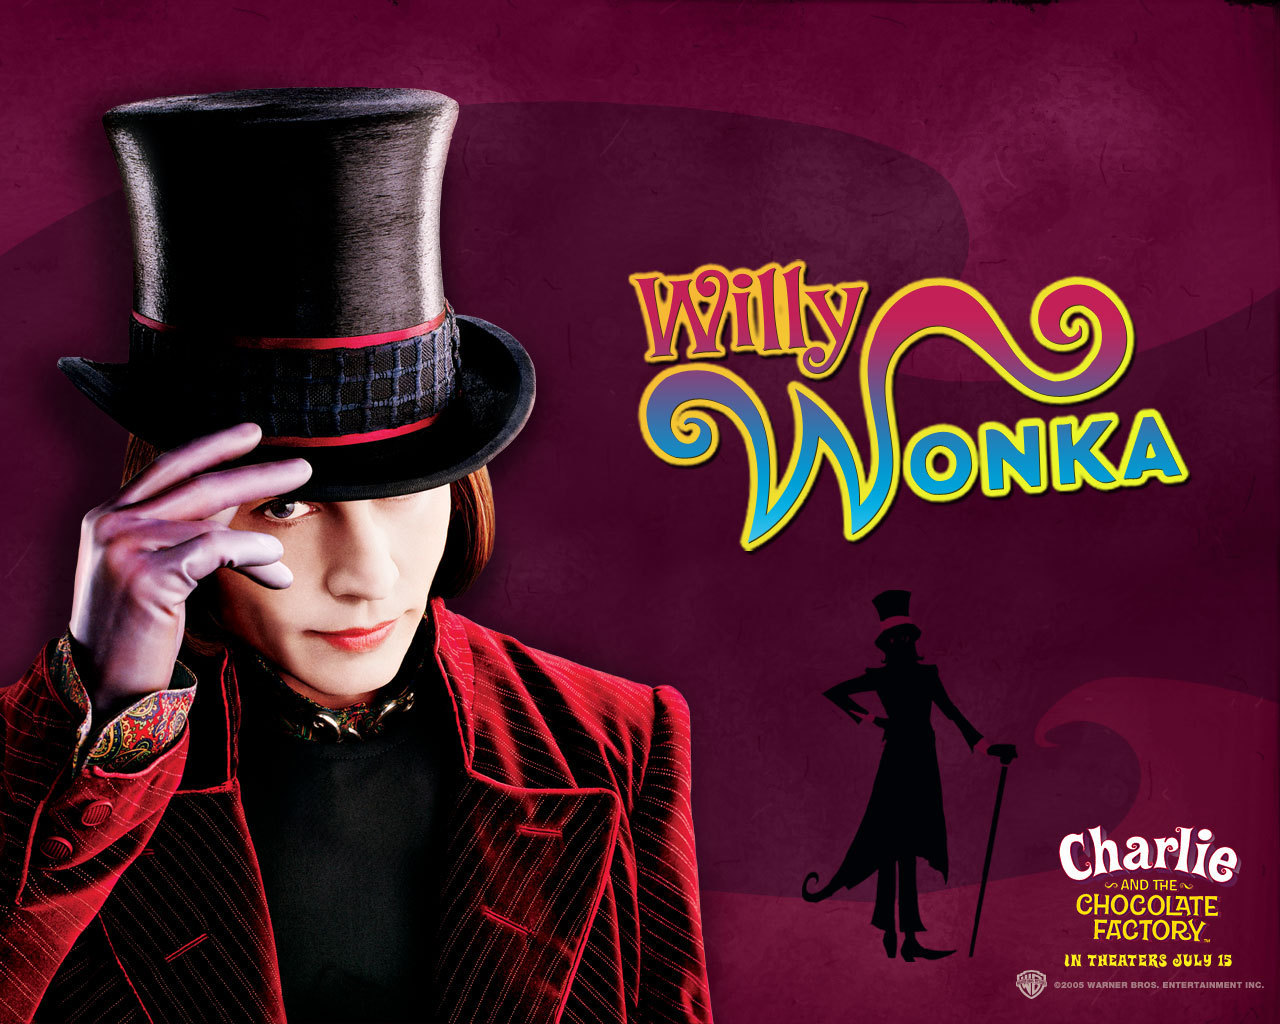 johnny depp 39 s movie characters images willy wonka hd